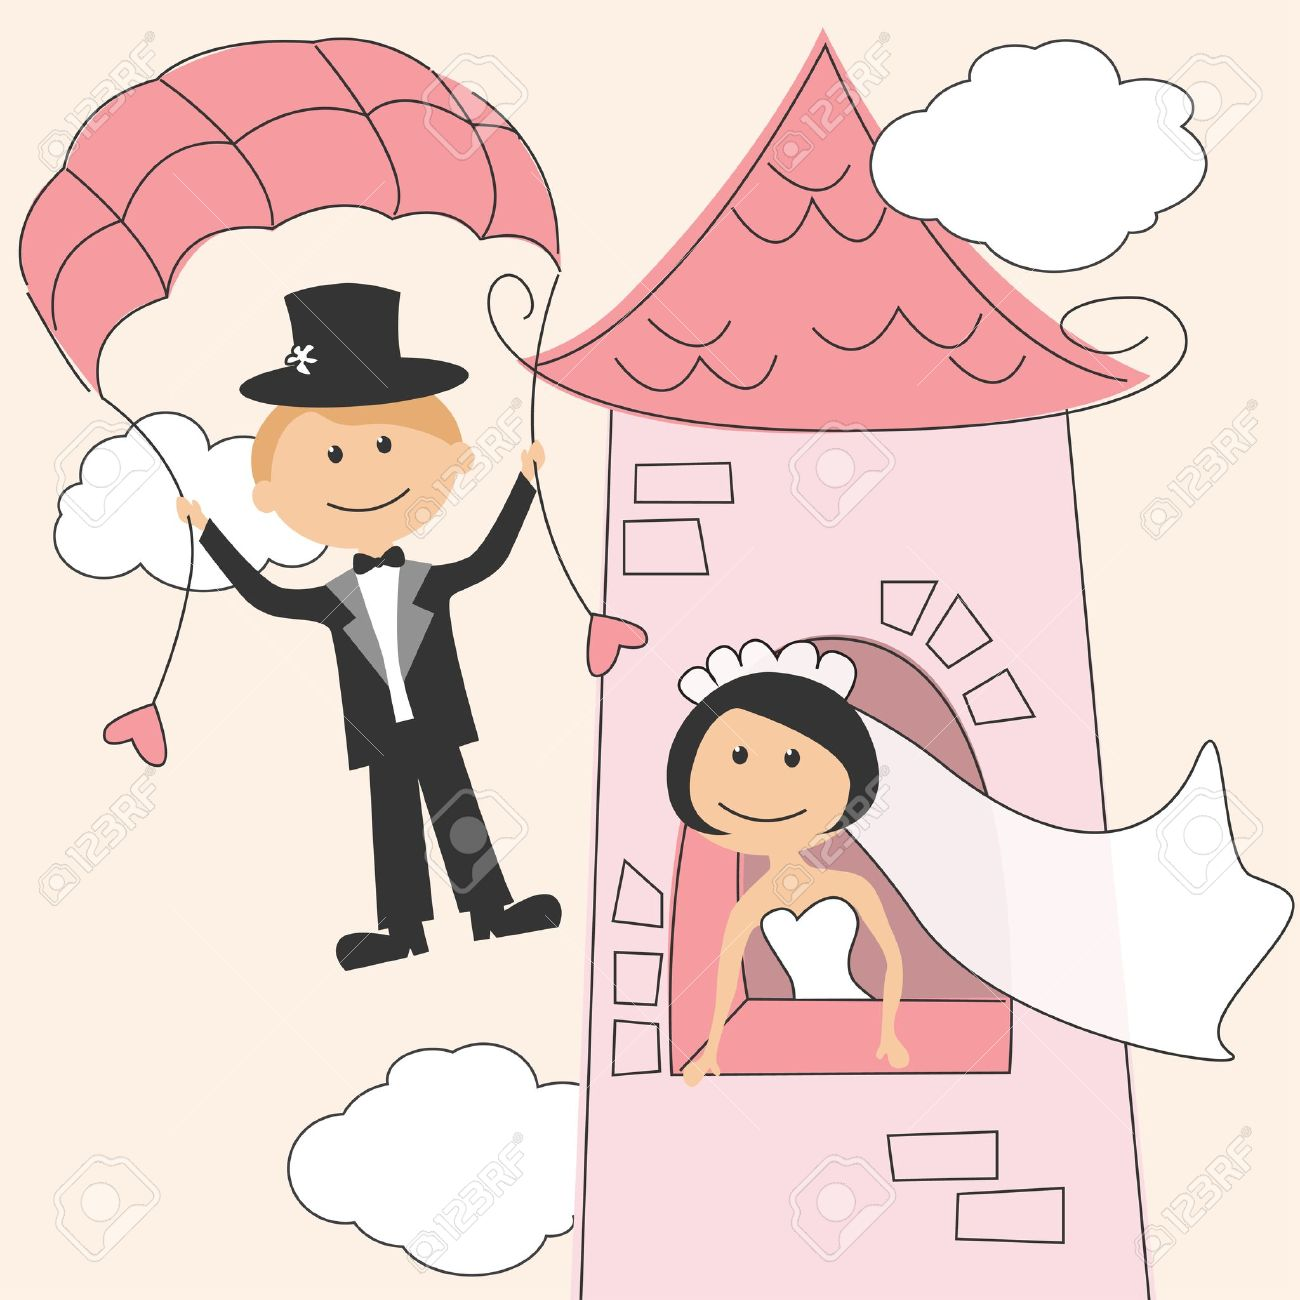 Wedding Invitation With Funny Bride In The Tower And Groom Royalty